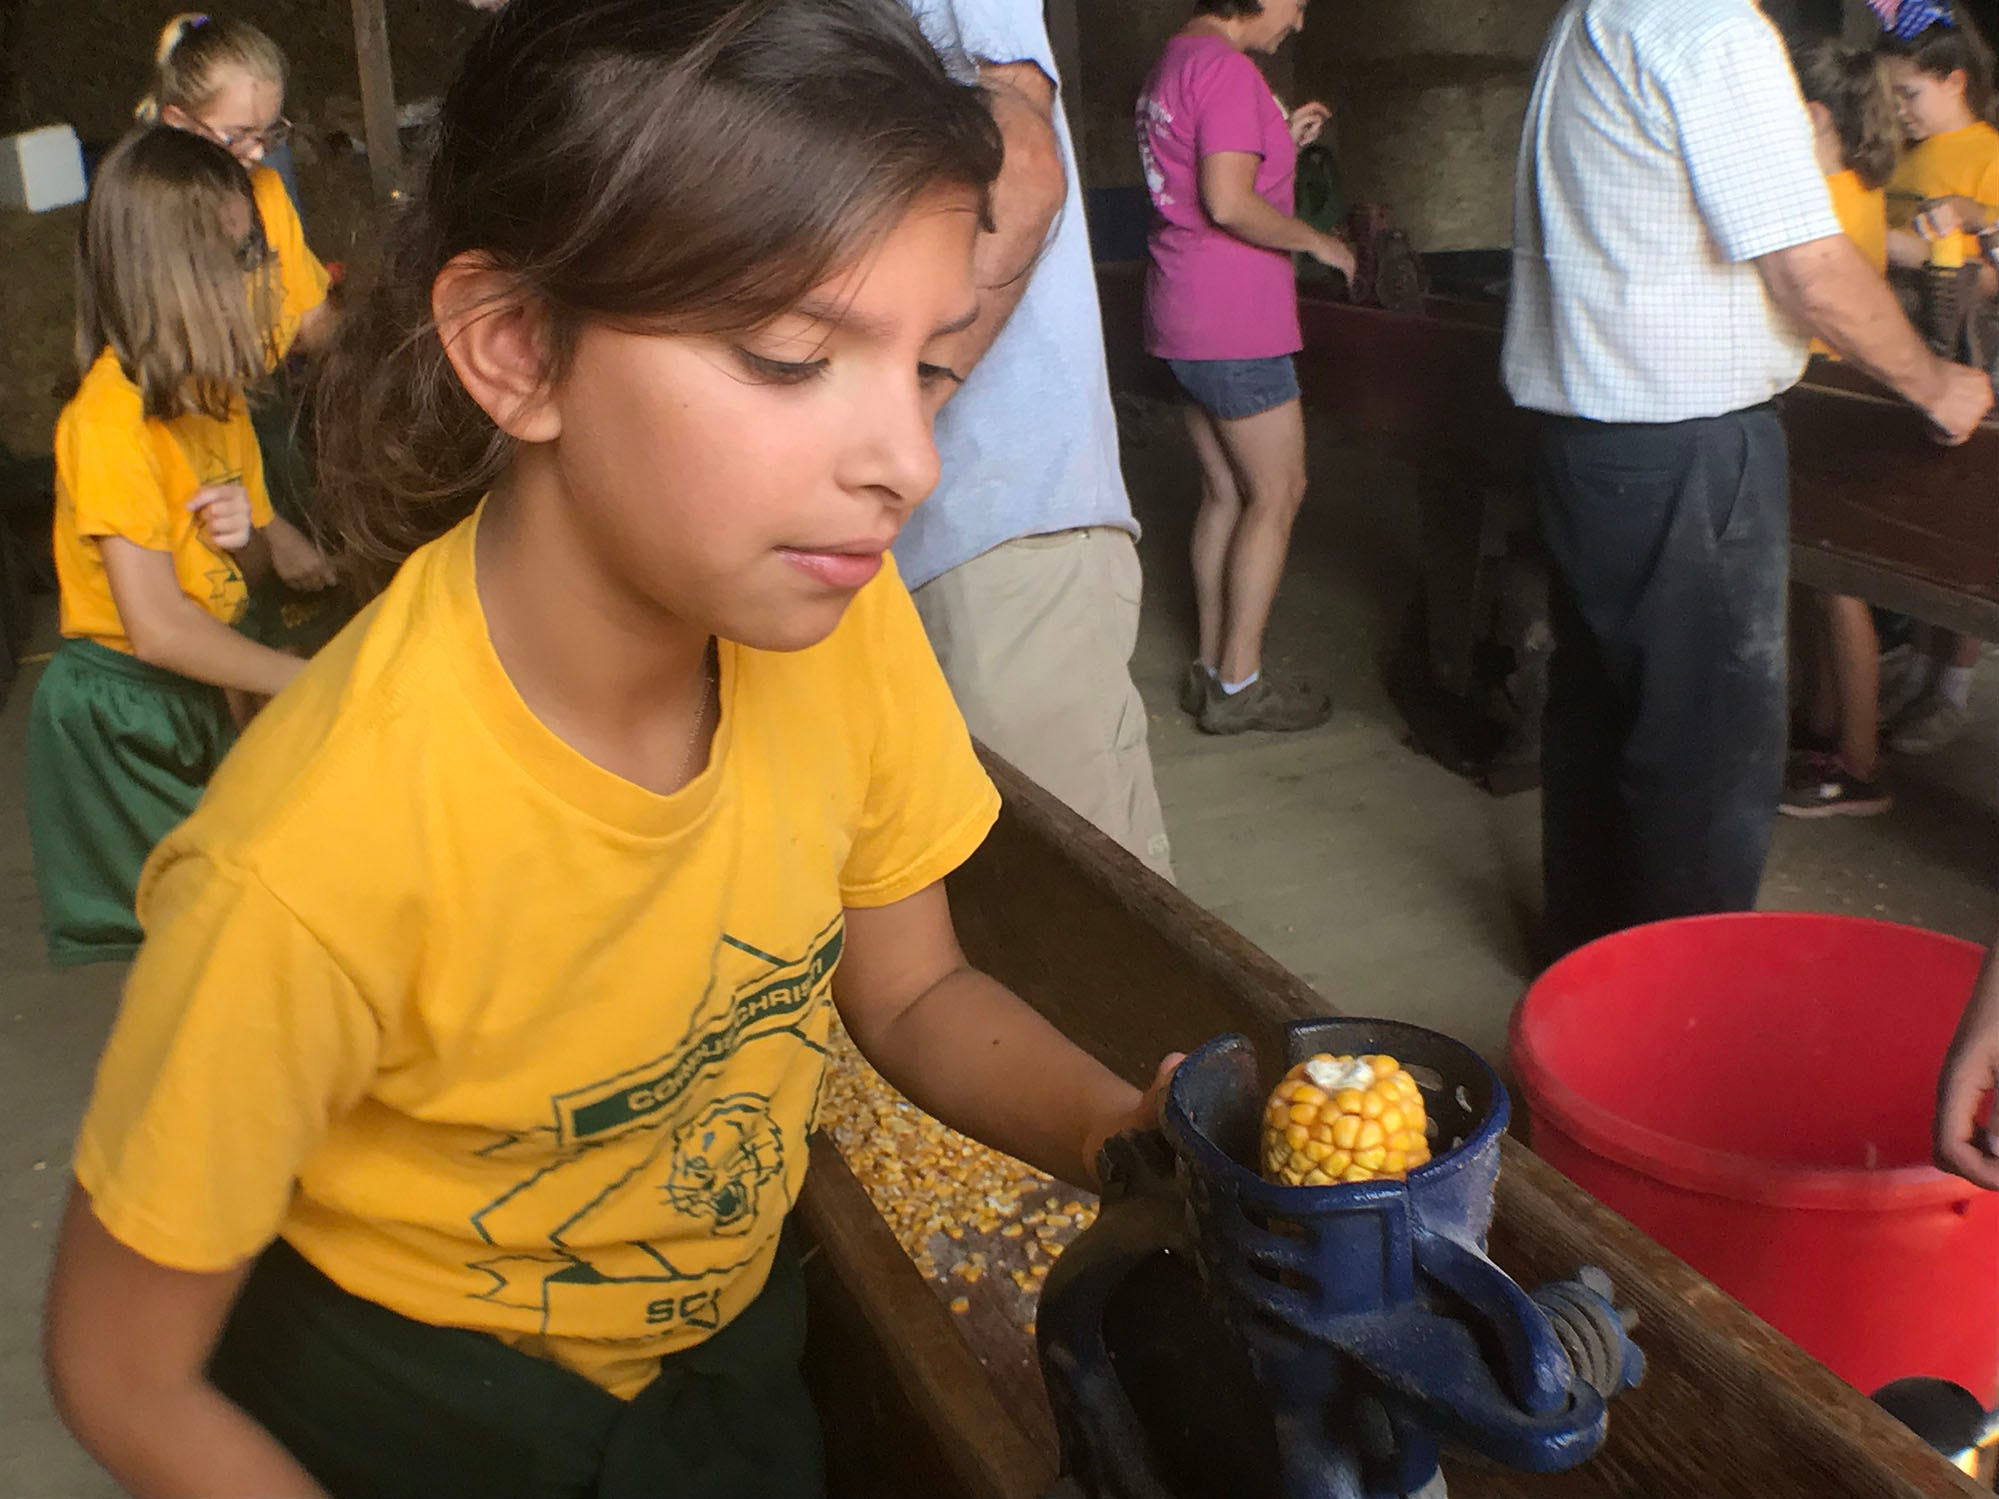 Charley Kalathas of Corpus Christi School uses a corn sheller. Franklin County fourth-graders are visiting the Franklin Fall Farm Fun Fest, today.  The annual event is being hosted by a father-daughter dairy farming team, Musser Farm. The students' trip is hosted by the Agriculture Education Institute. The fest itself is hosted by the